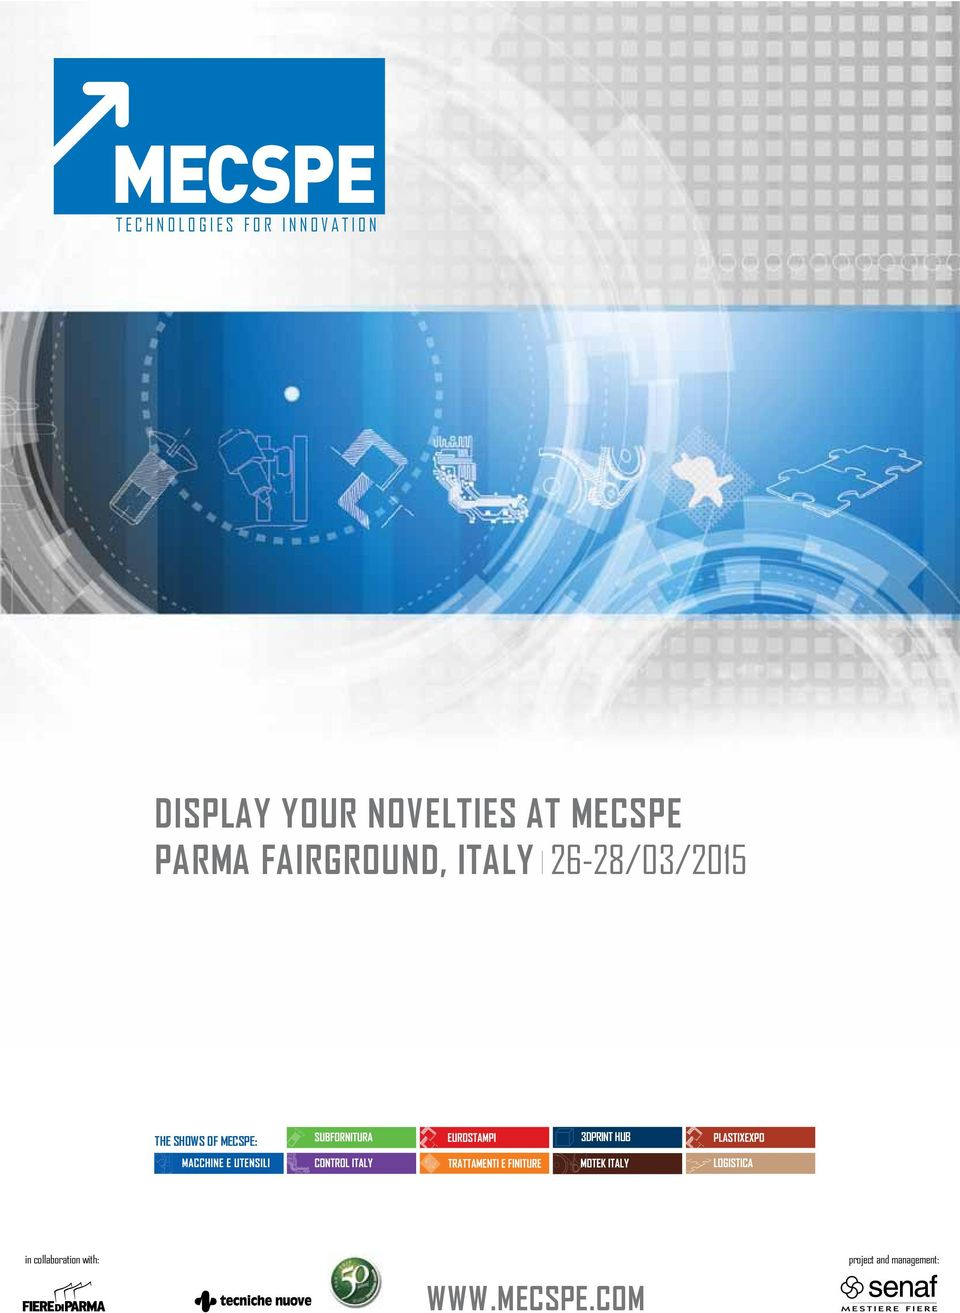 THE SHOWS OF MECSPE: 3DPRINT HUB in